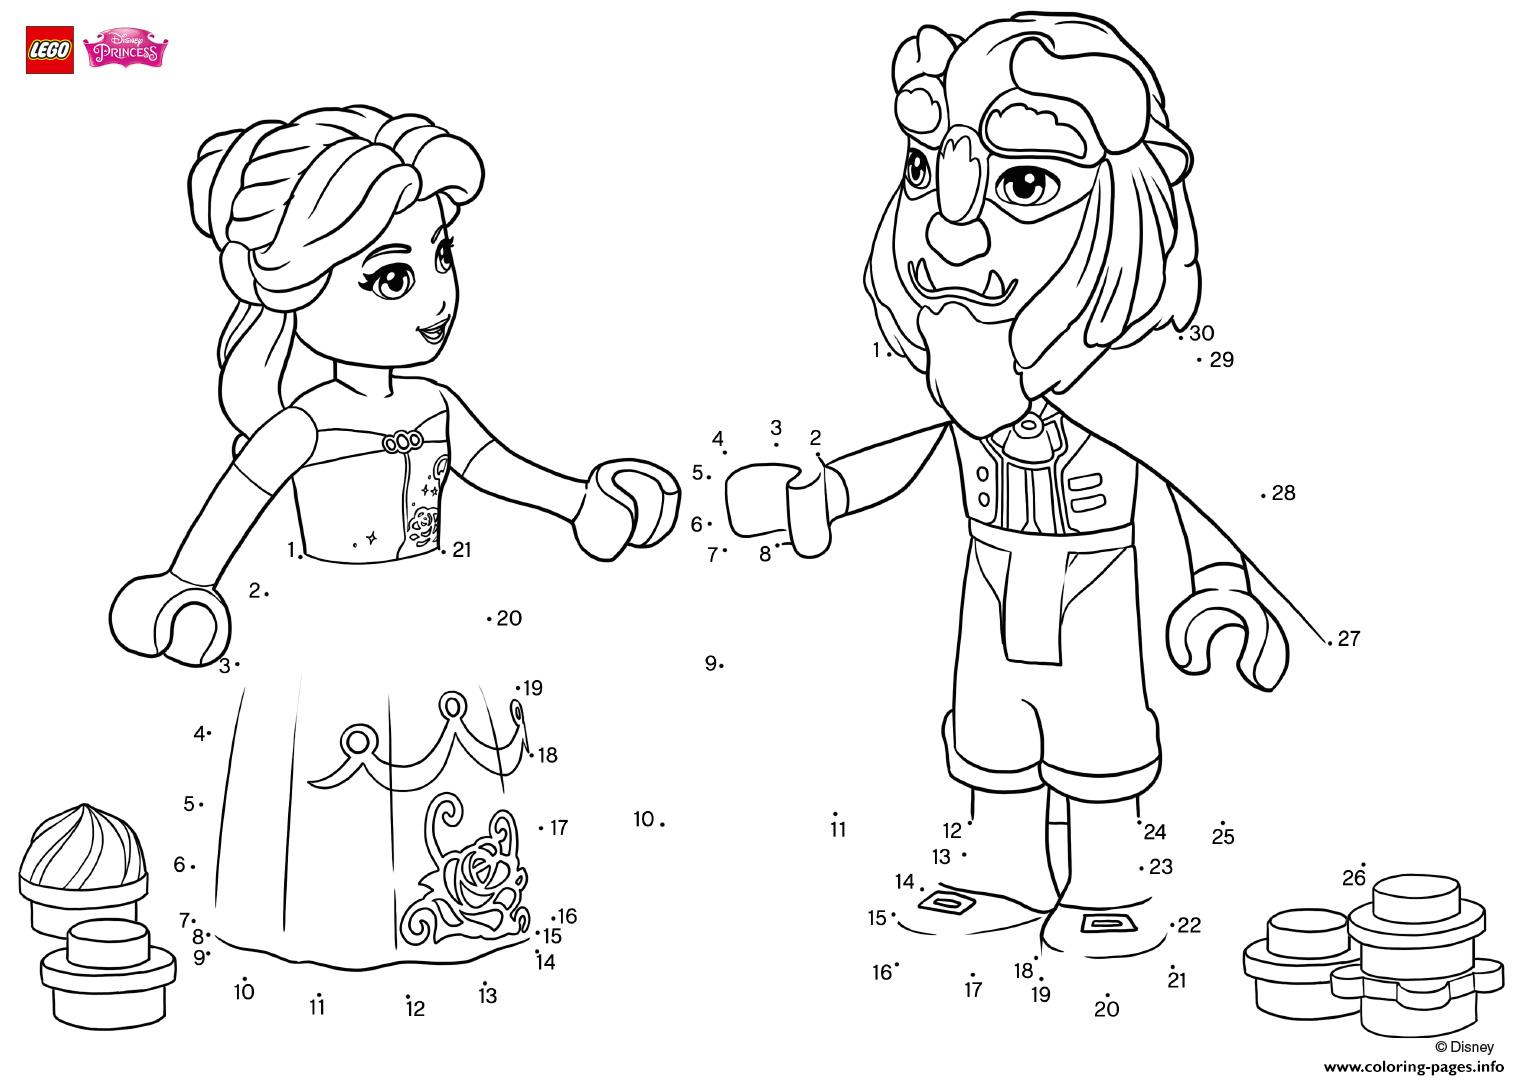 Have Fun Completing The Drawing Of Beauty And The Beast Lego Disney Coloring Pages Printable